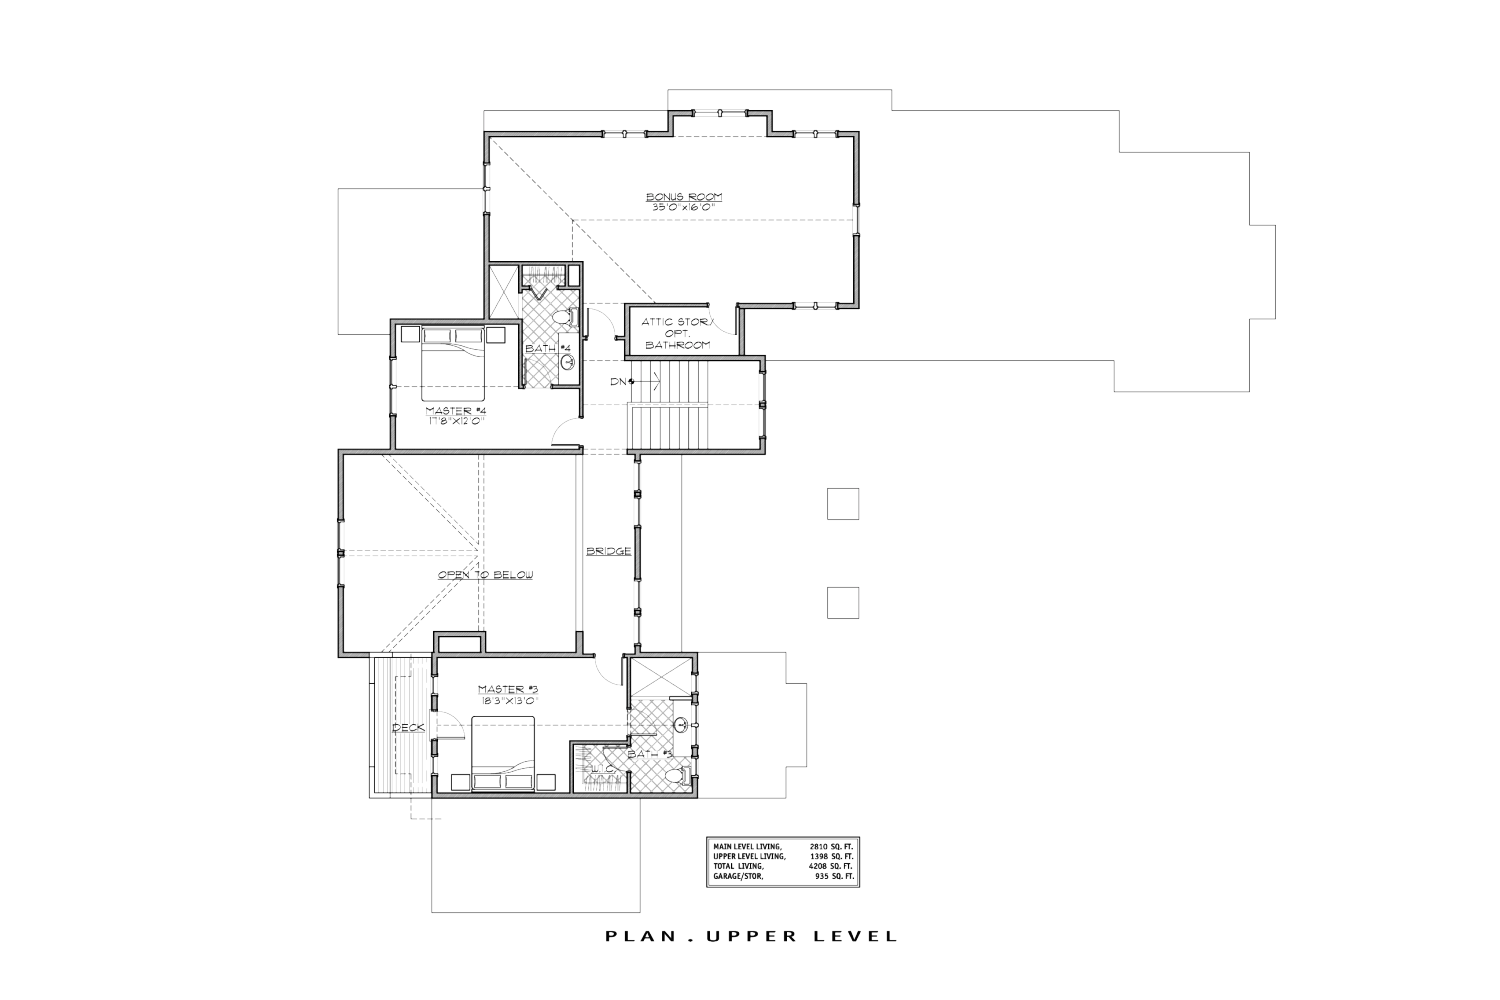 The floor plan for the upper level, showing the bonus room and the storage above the garage.